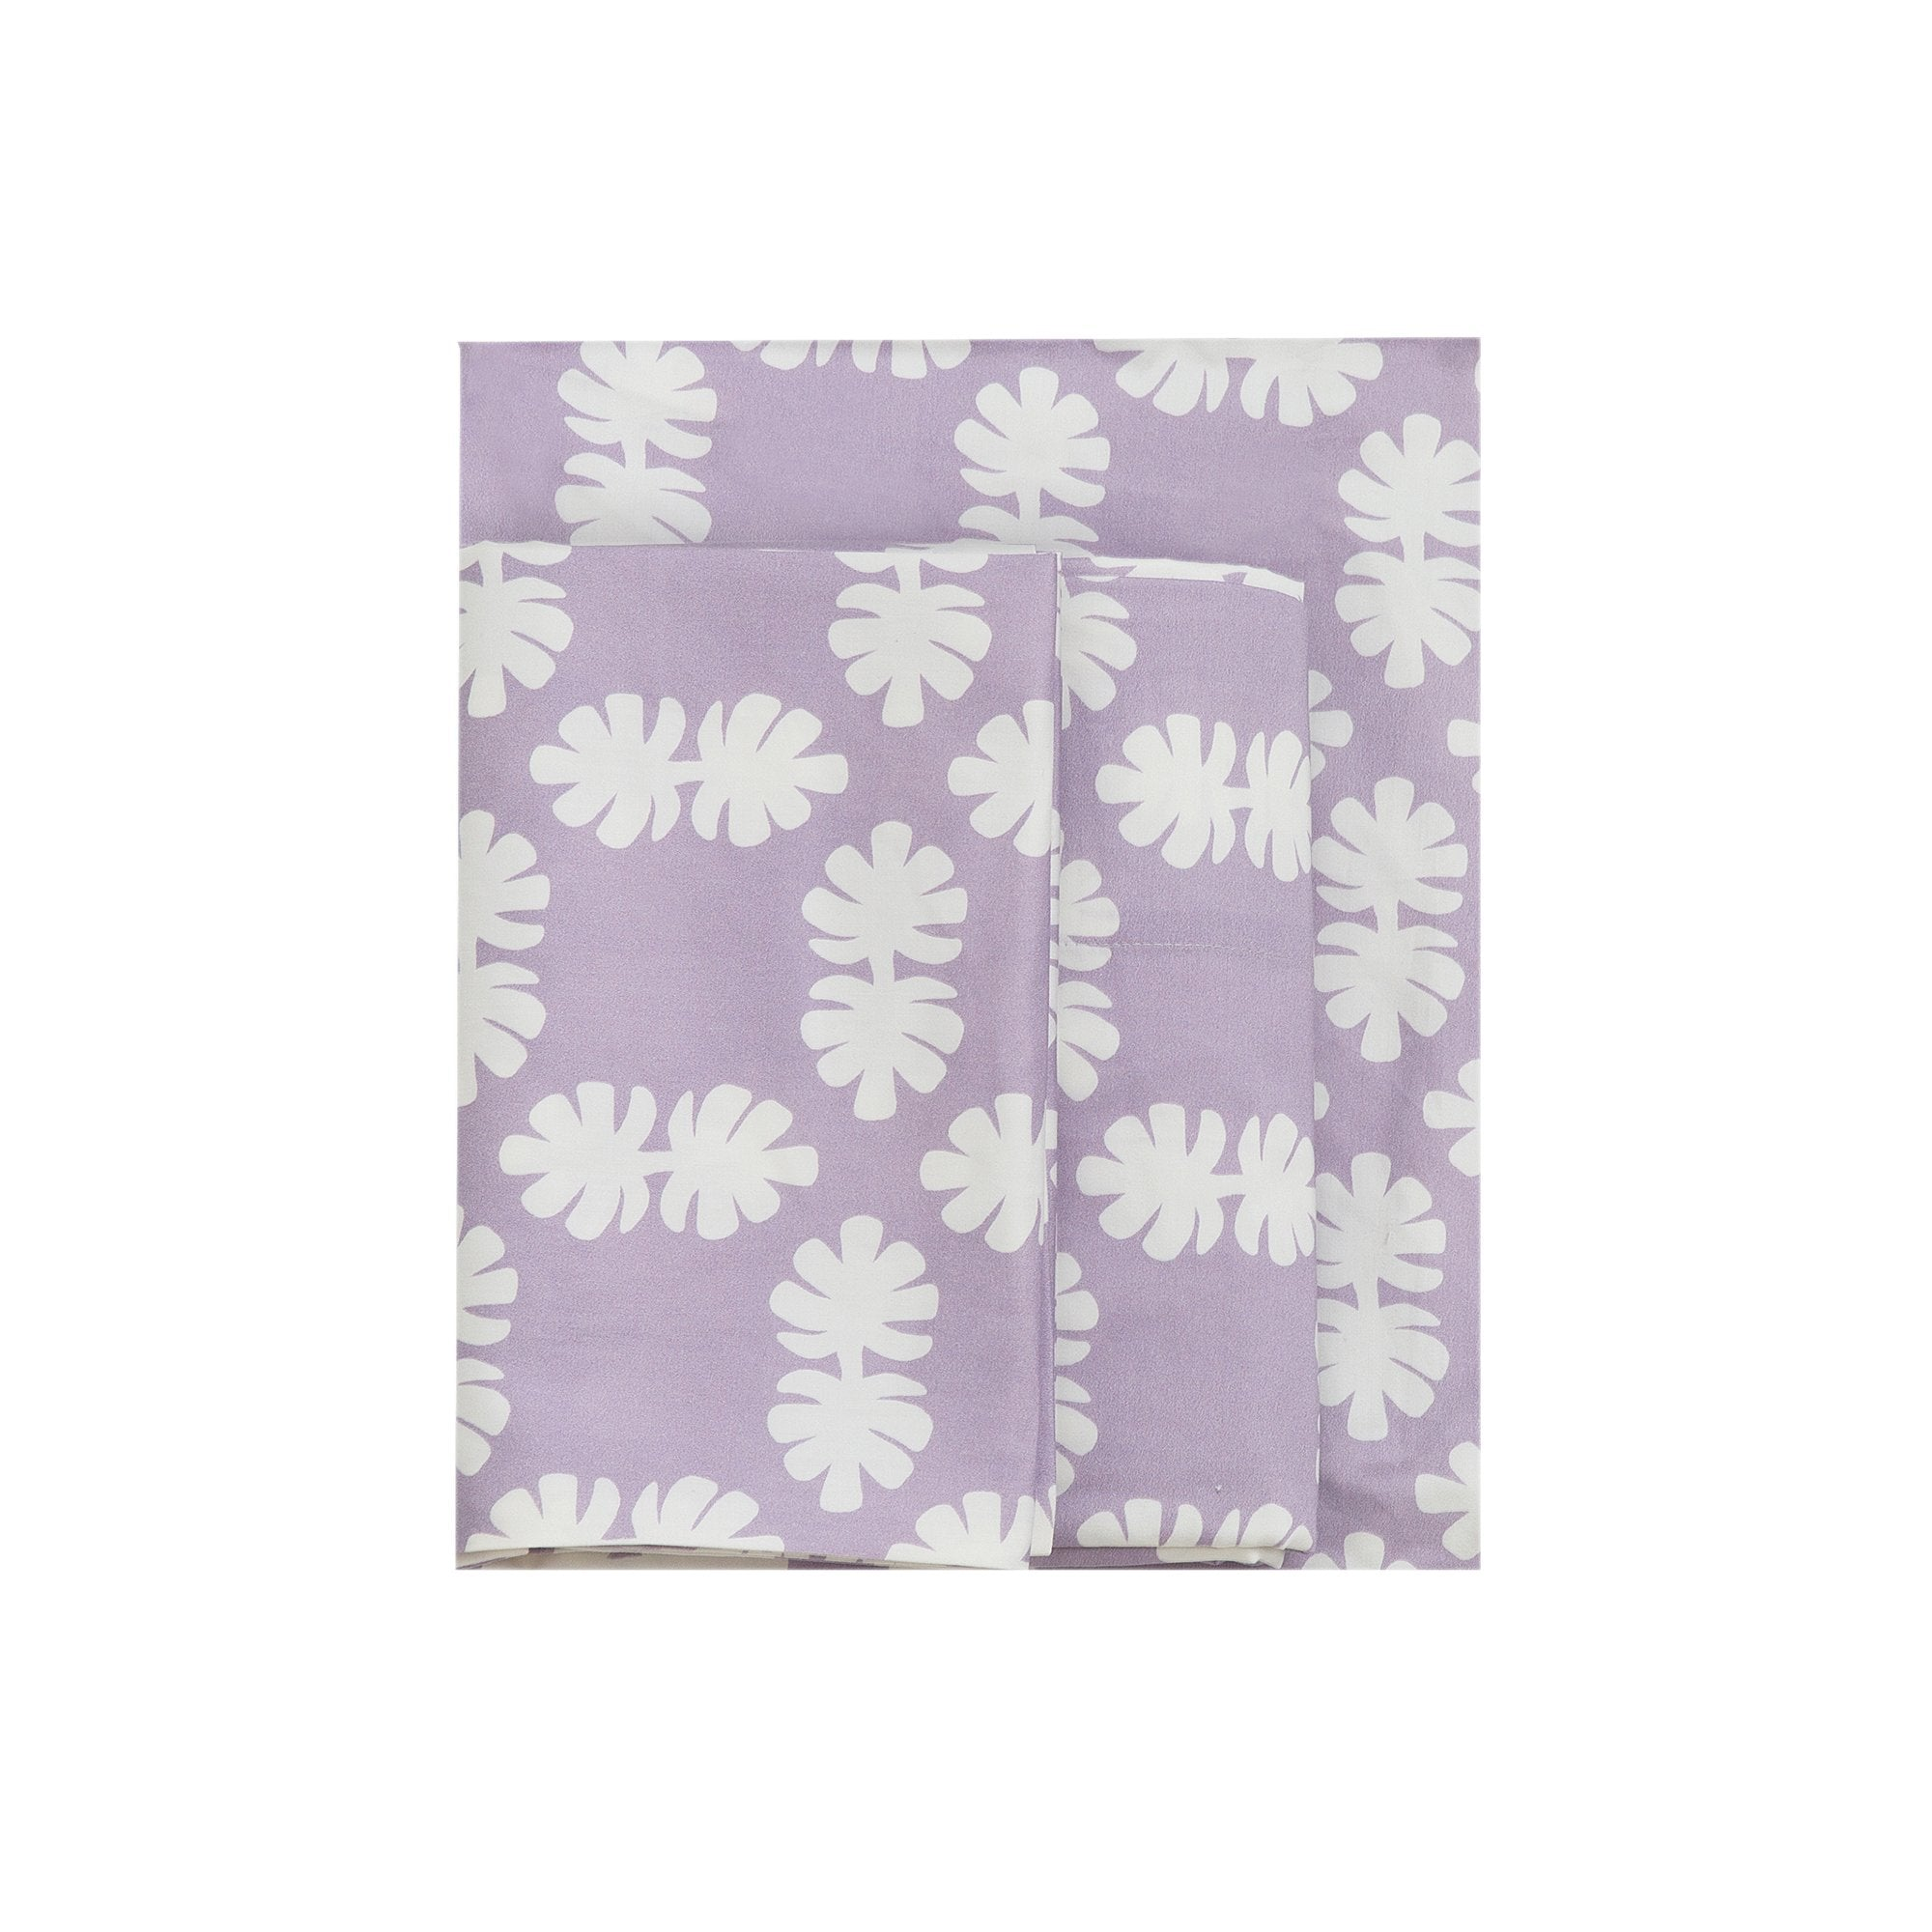 Kikau's Lots of Lilac Coconut Palm kids sheet set on white background